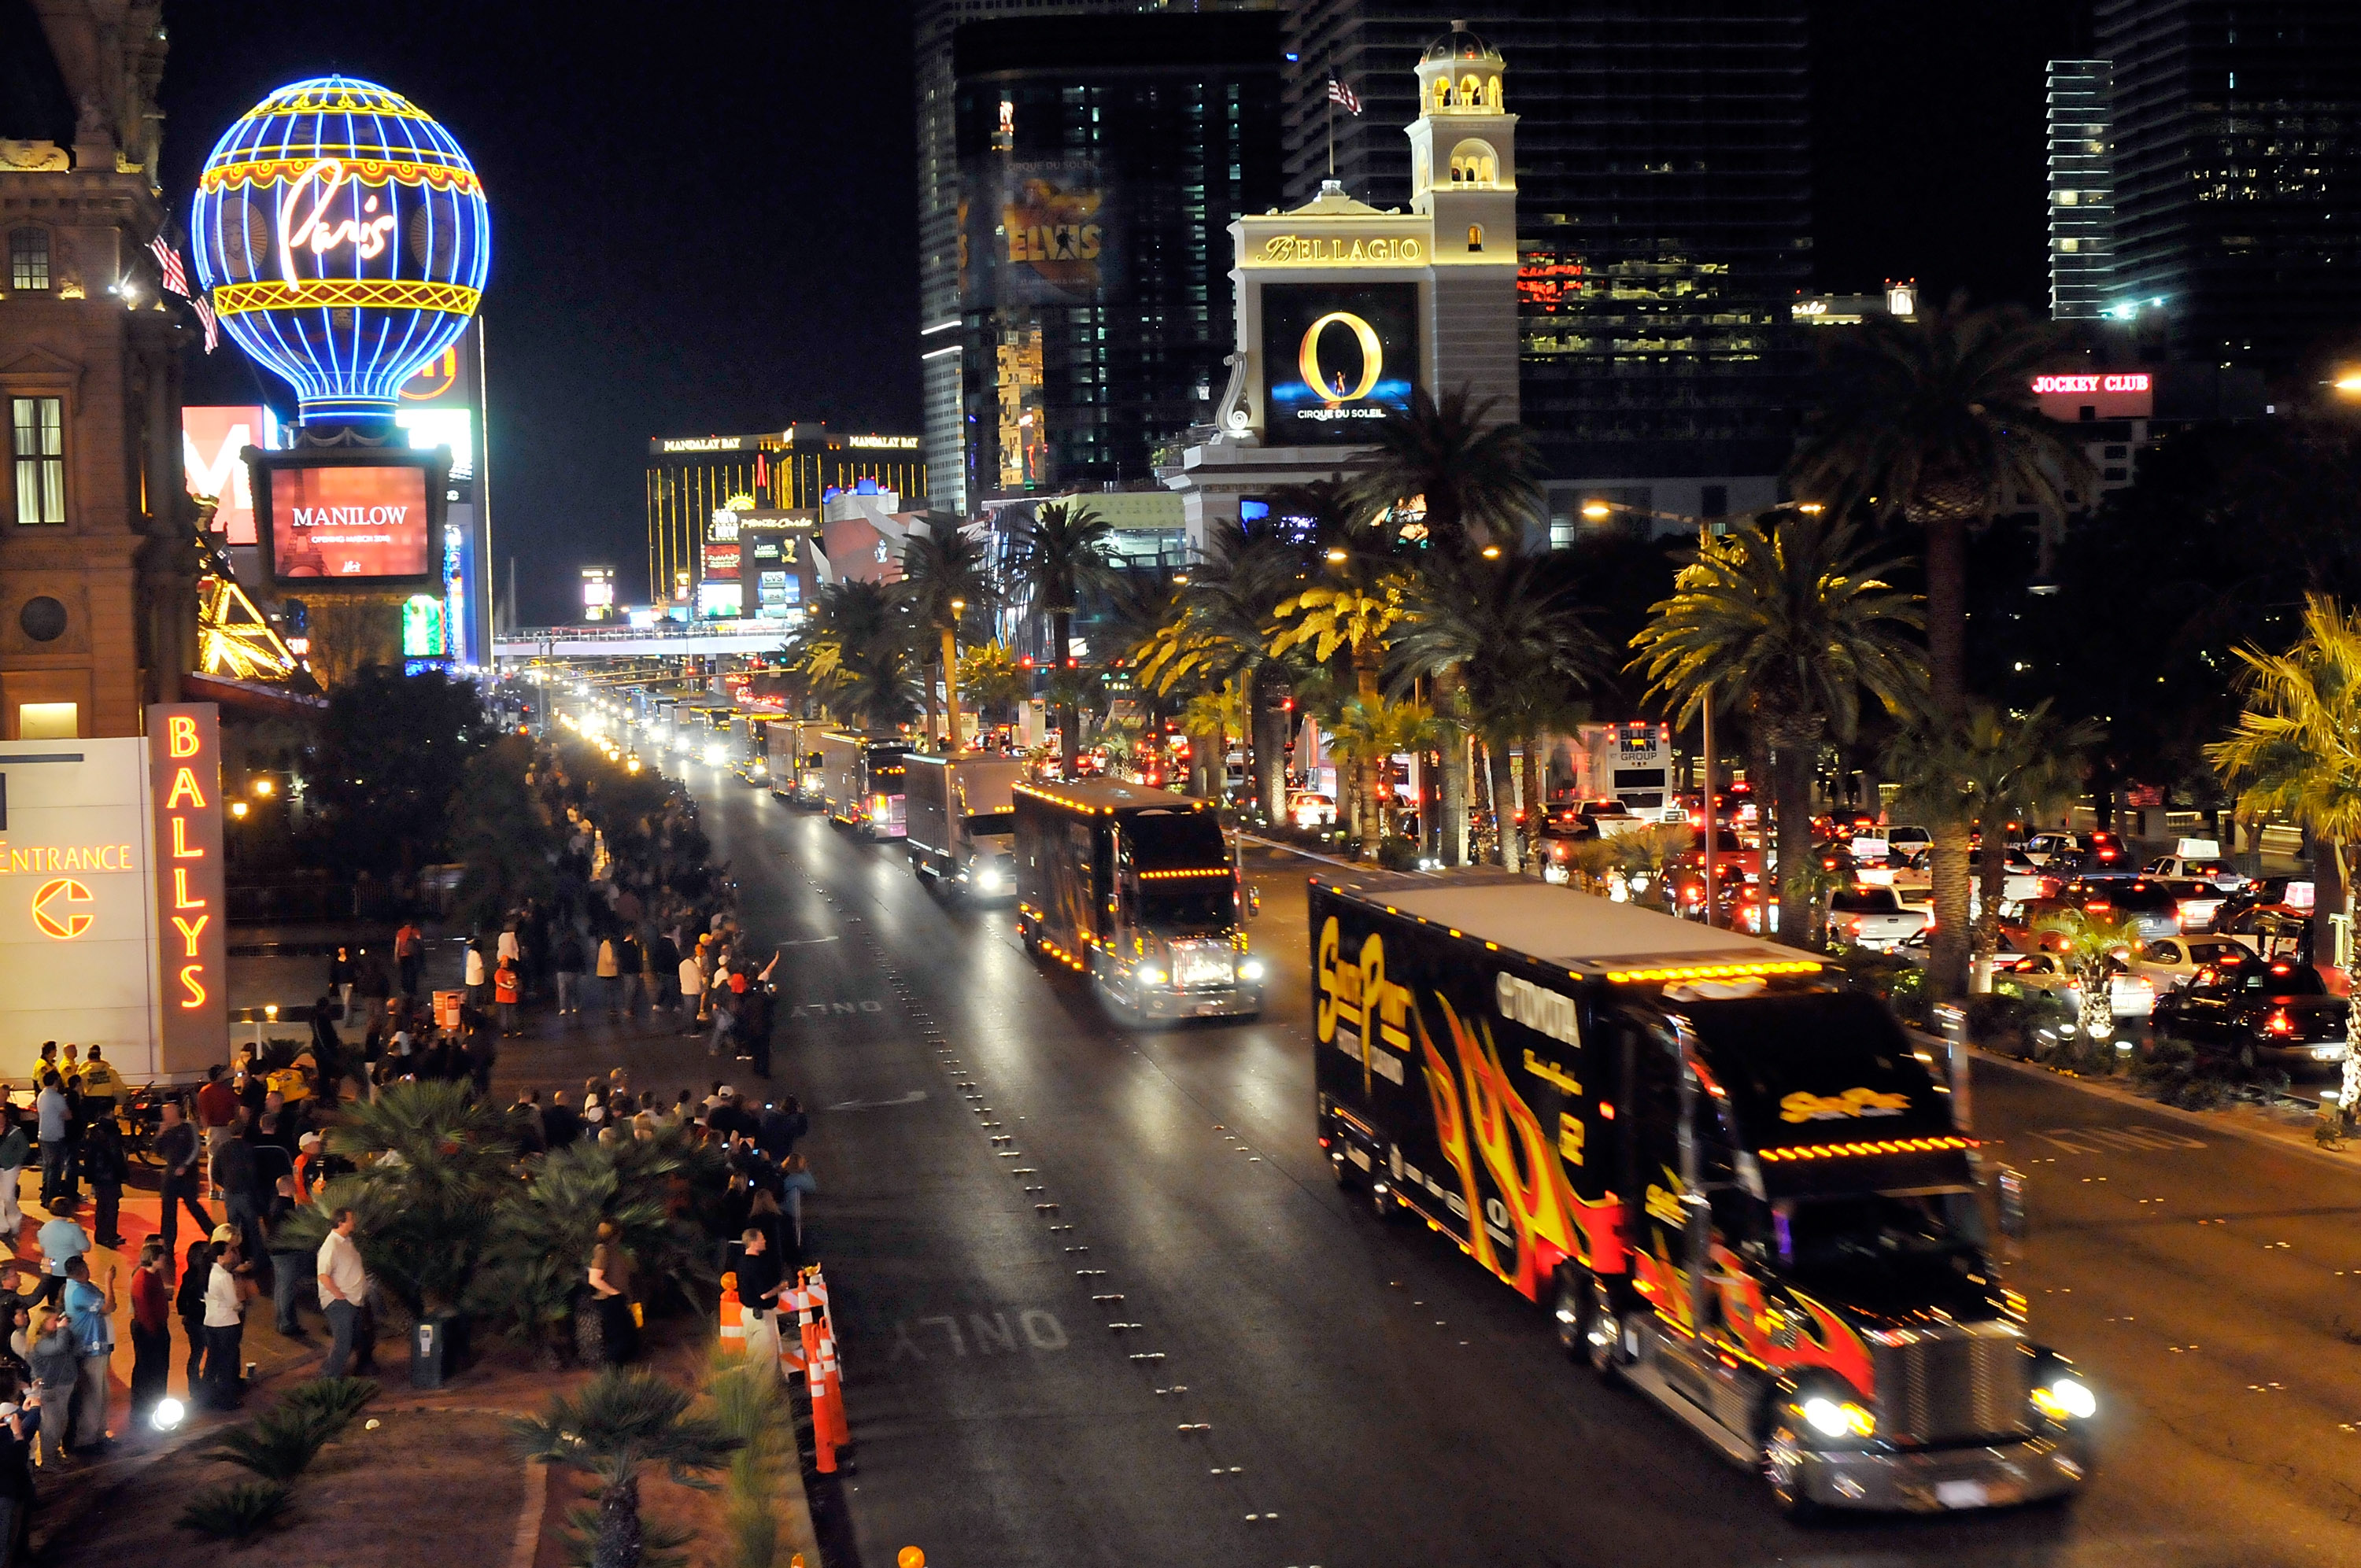 LAS VEGAS - FEBRUARY 25:  NASCAR car haulers parade down the Las Vegas Strip Thursday, February 25, 2010 in Las Vegas, Nevada. Racers will compete in the 2010 Shelby American, the third race of the NASCAR Sprint Cup Series race at the Las Vegas Motor Spee